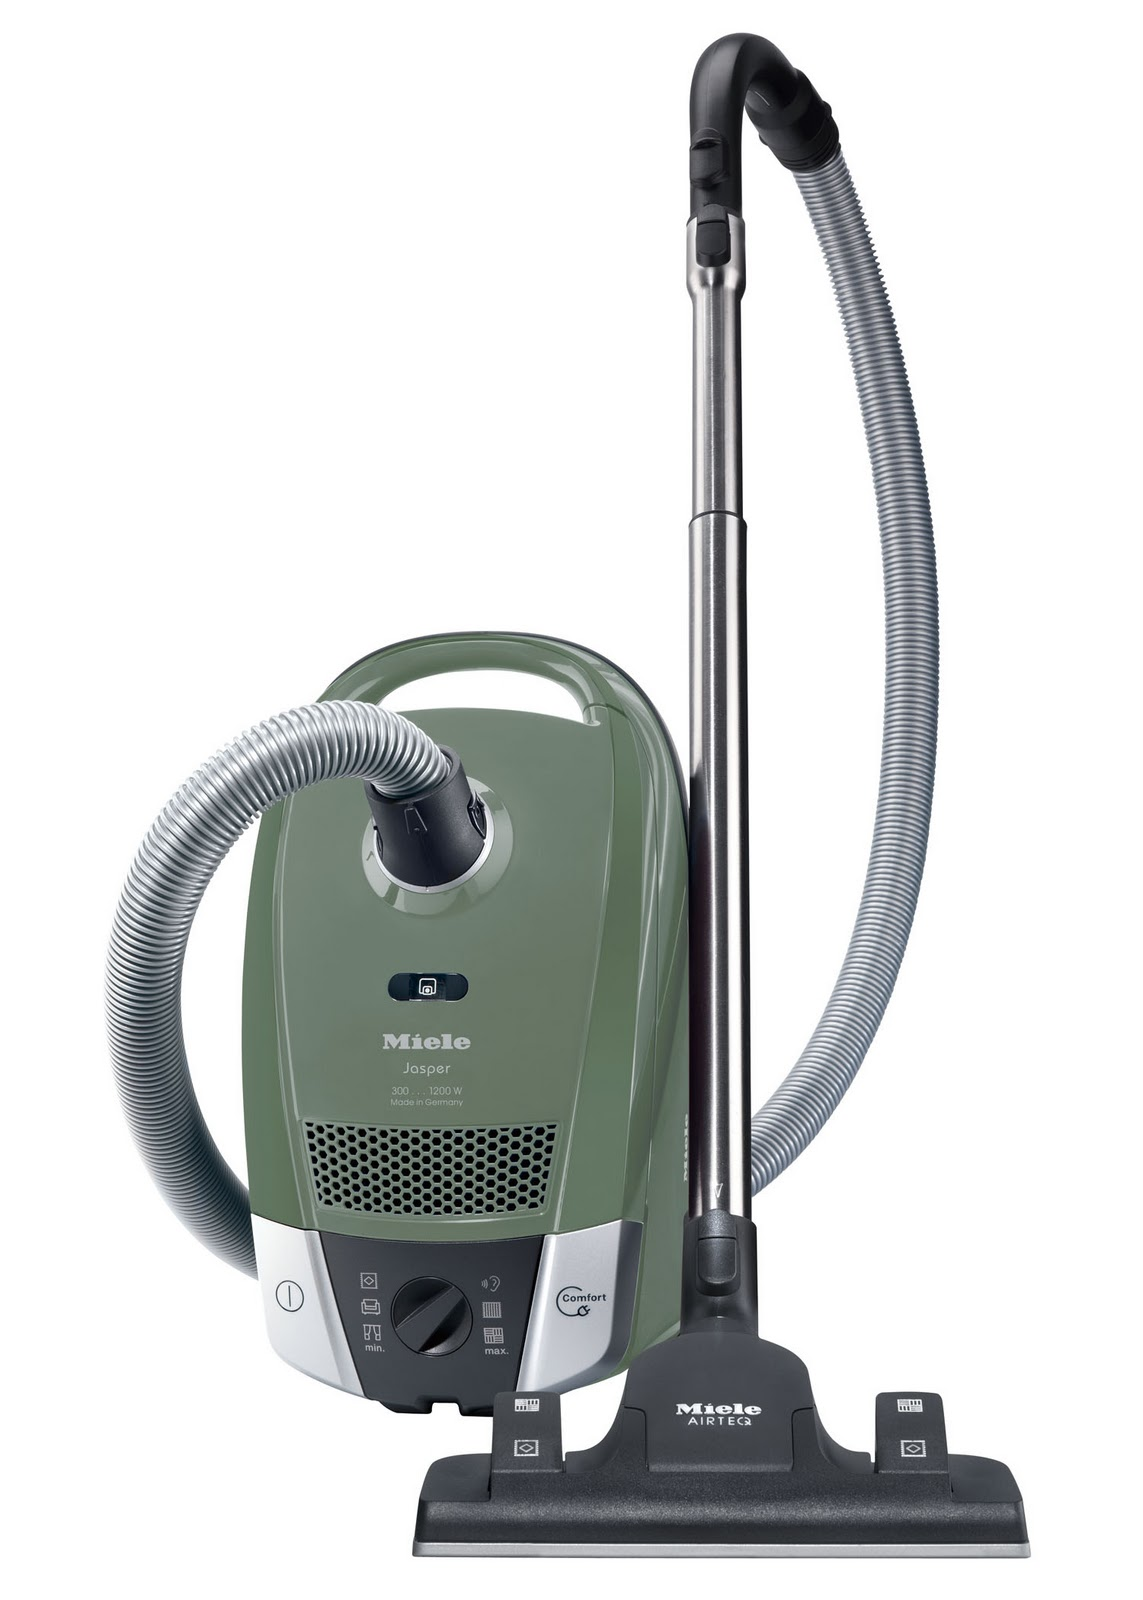 jj 39 s green natural cleaning at miele s6 canister vacuum cleaner. Black Bedroom Furniture Sets. Home Design Ideas